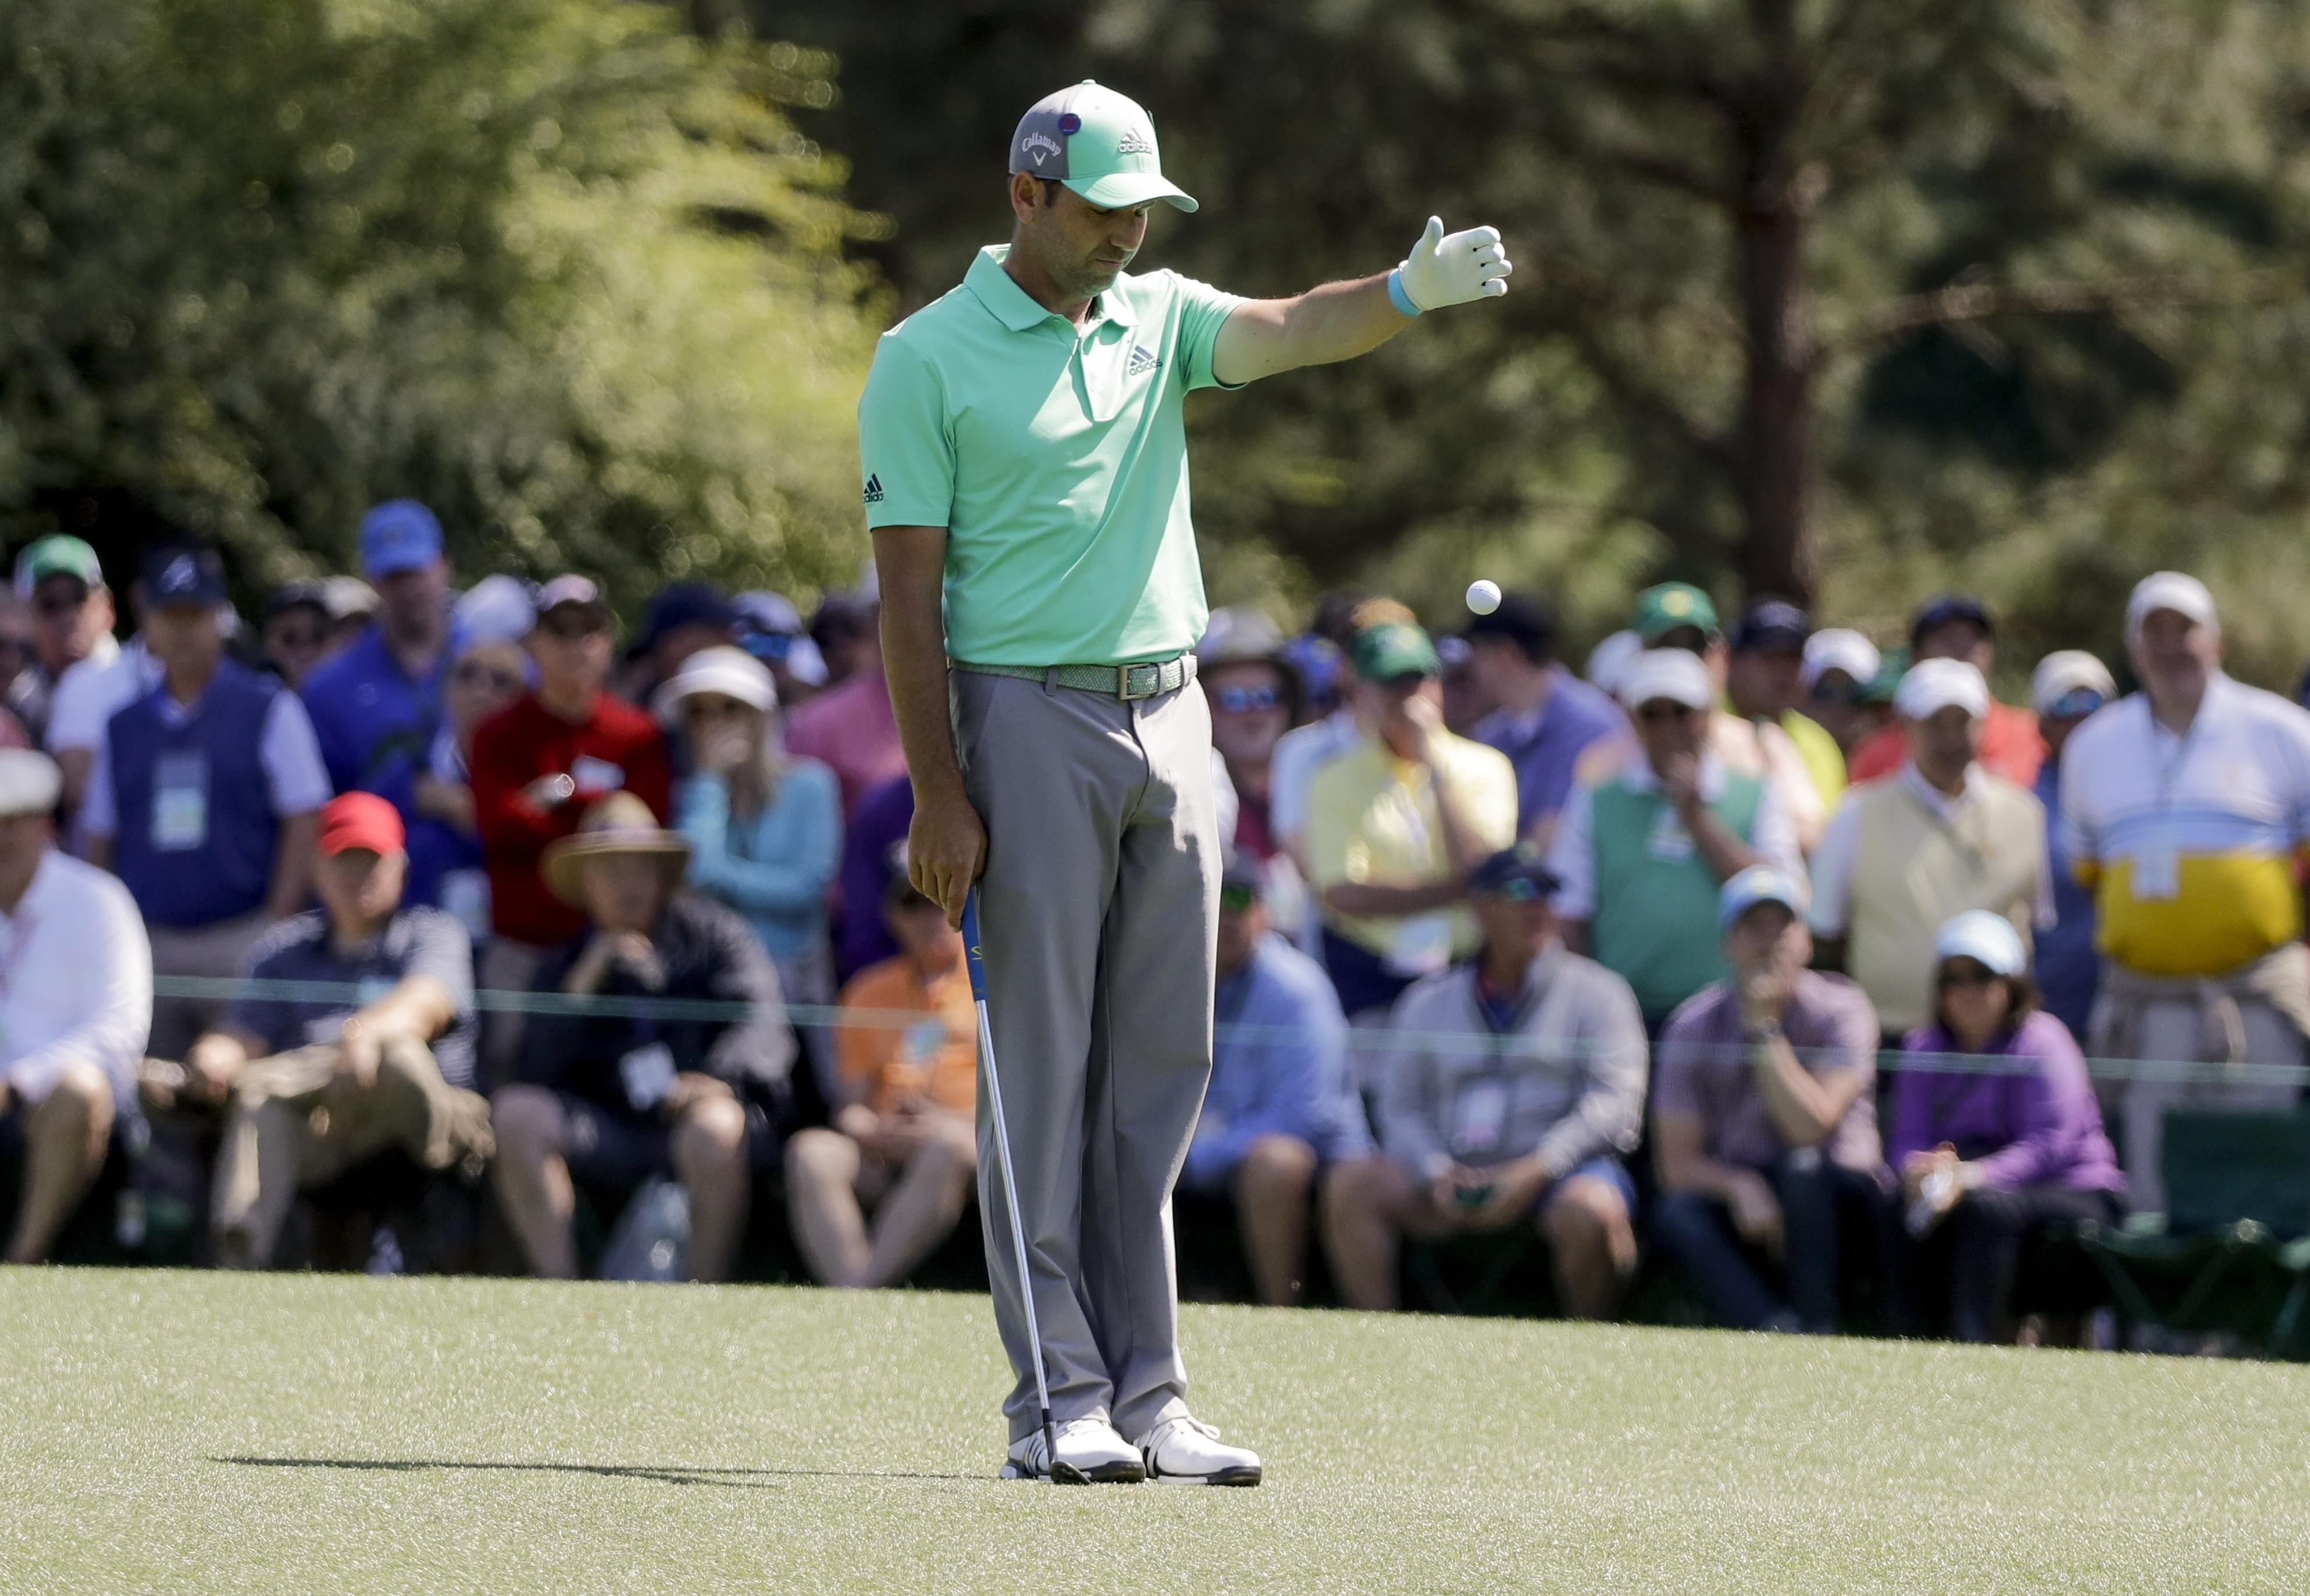 Garcia takes a drop on his way to scoring 13 on the par-five 15th hole